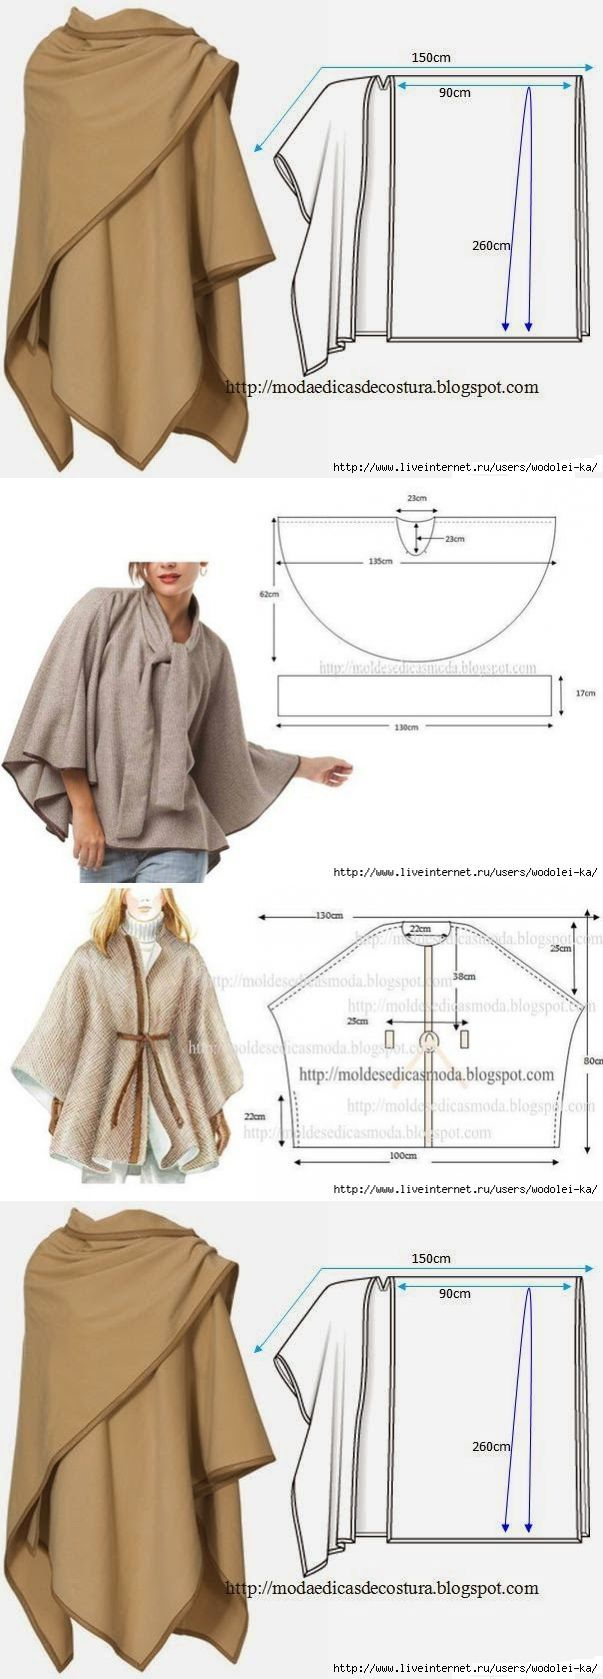 The original cape-poncho for autumn days.